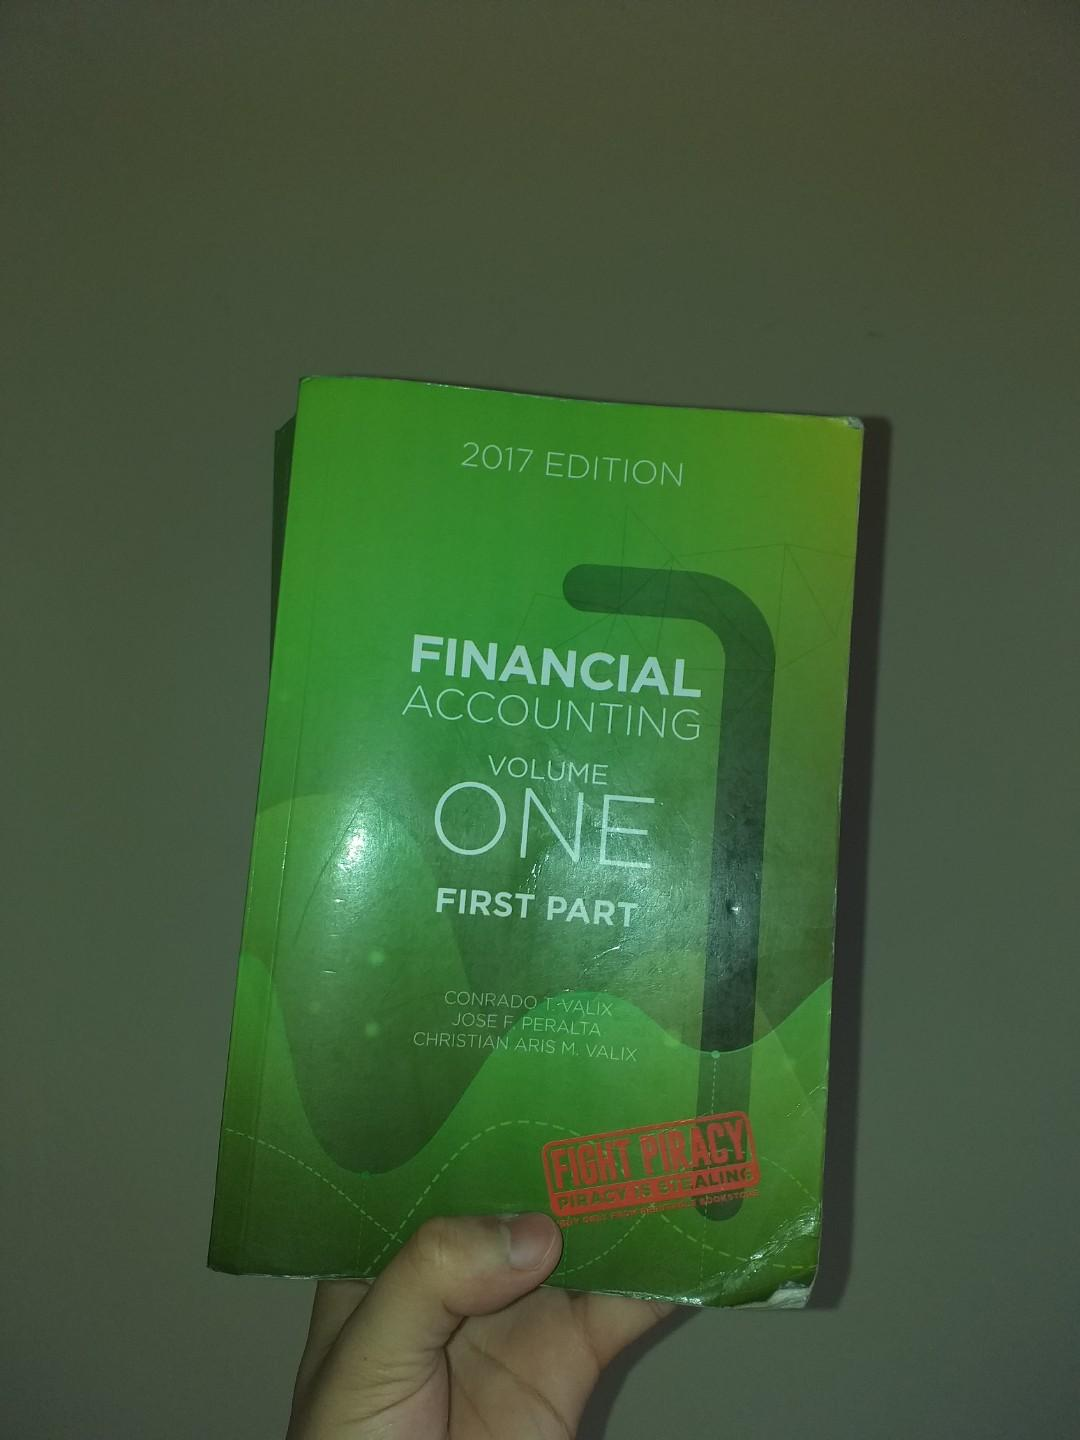 BRAND NEW ACCOUNTING BOOK FINANCIAL ACCOUNTING VOLUME 1 FIRST PART 2017 EDITION